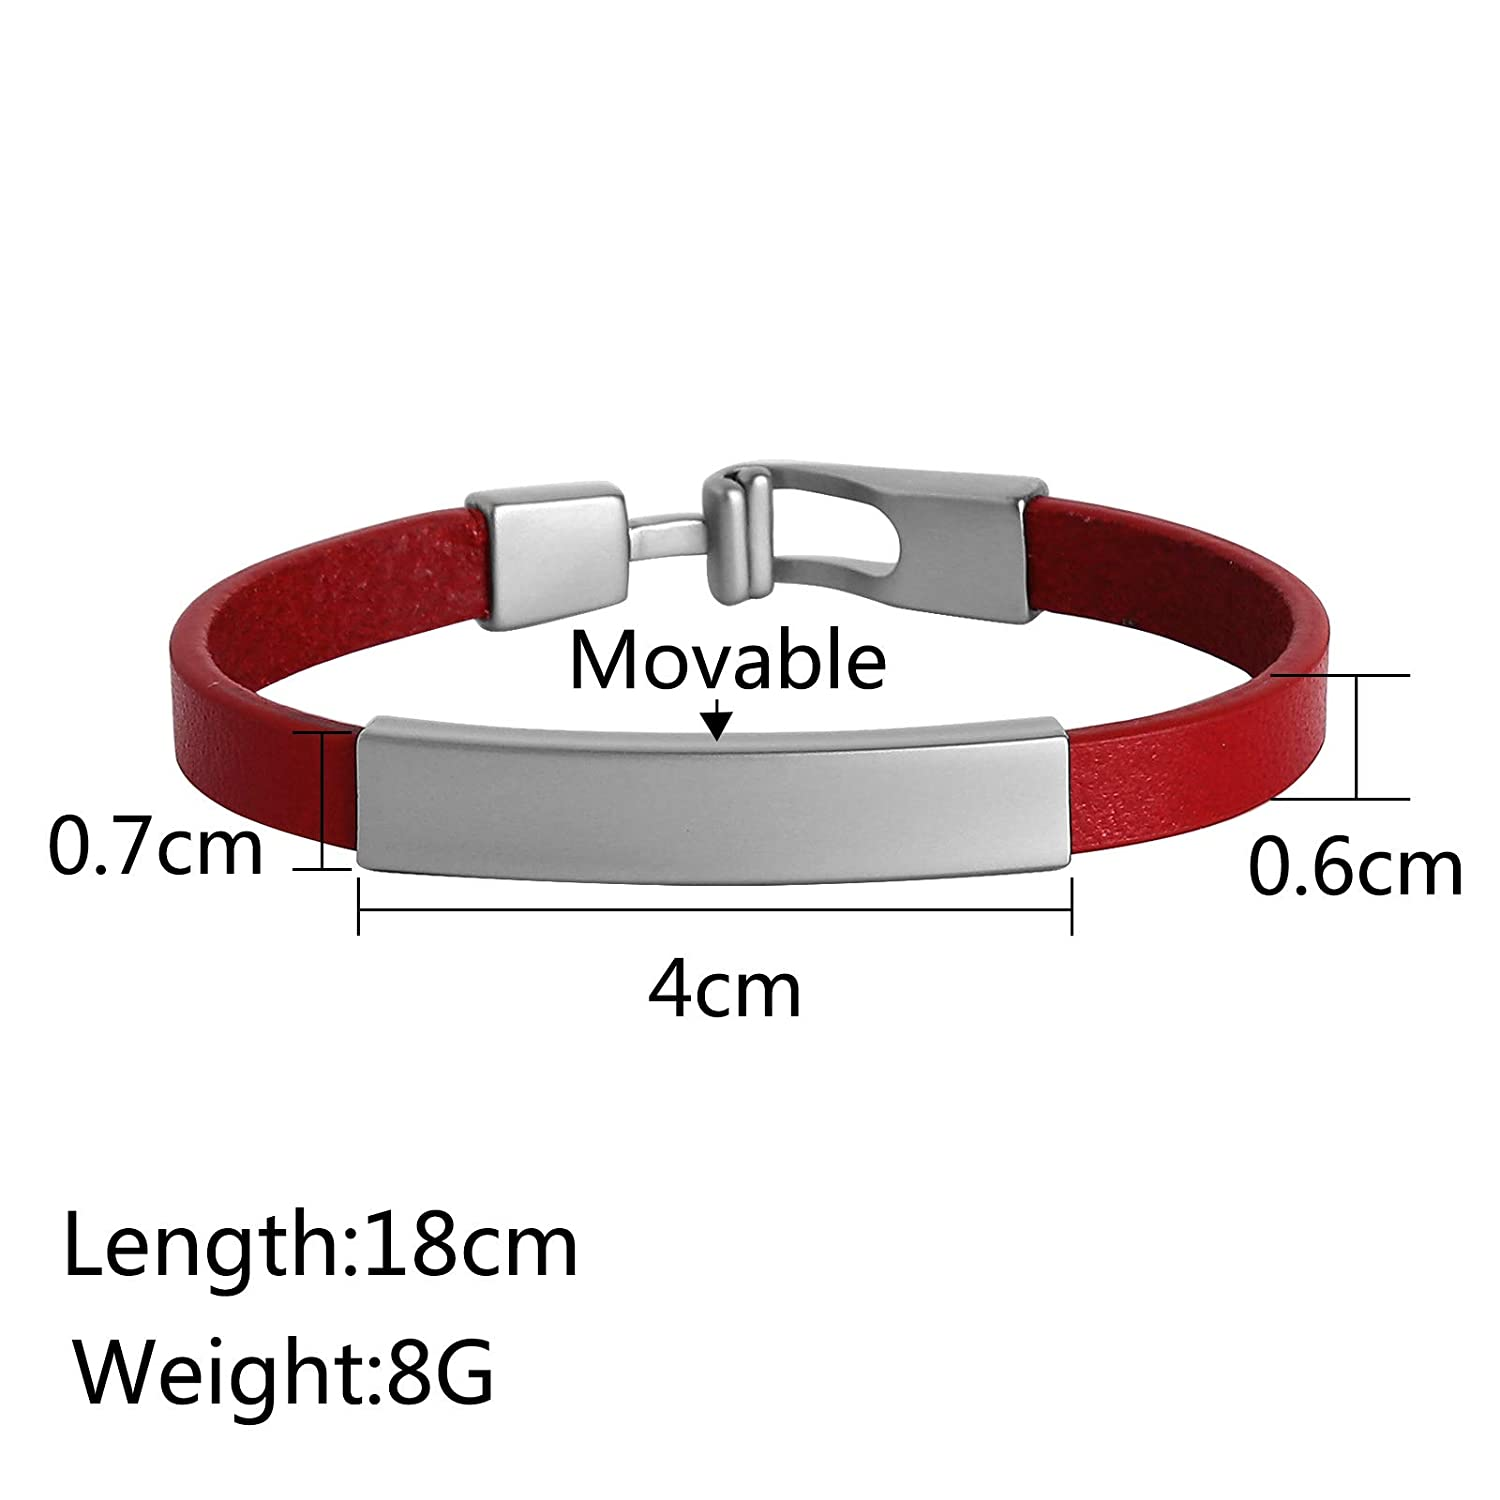 MoAndy Cuff Stainless Steel Bracelets Bangle Bracelets for He She Blank Tag Free Engraving